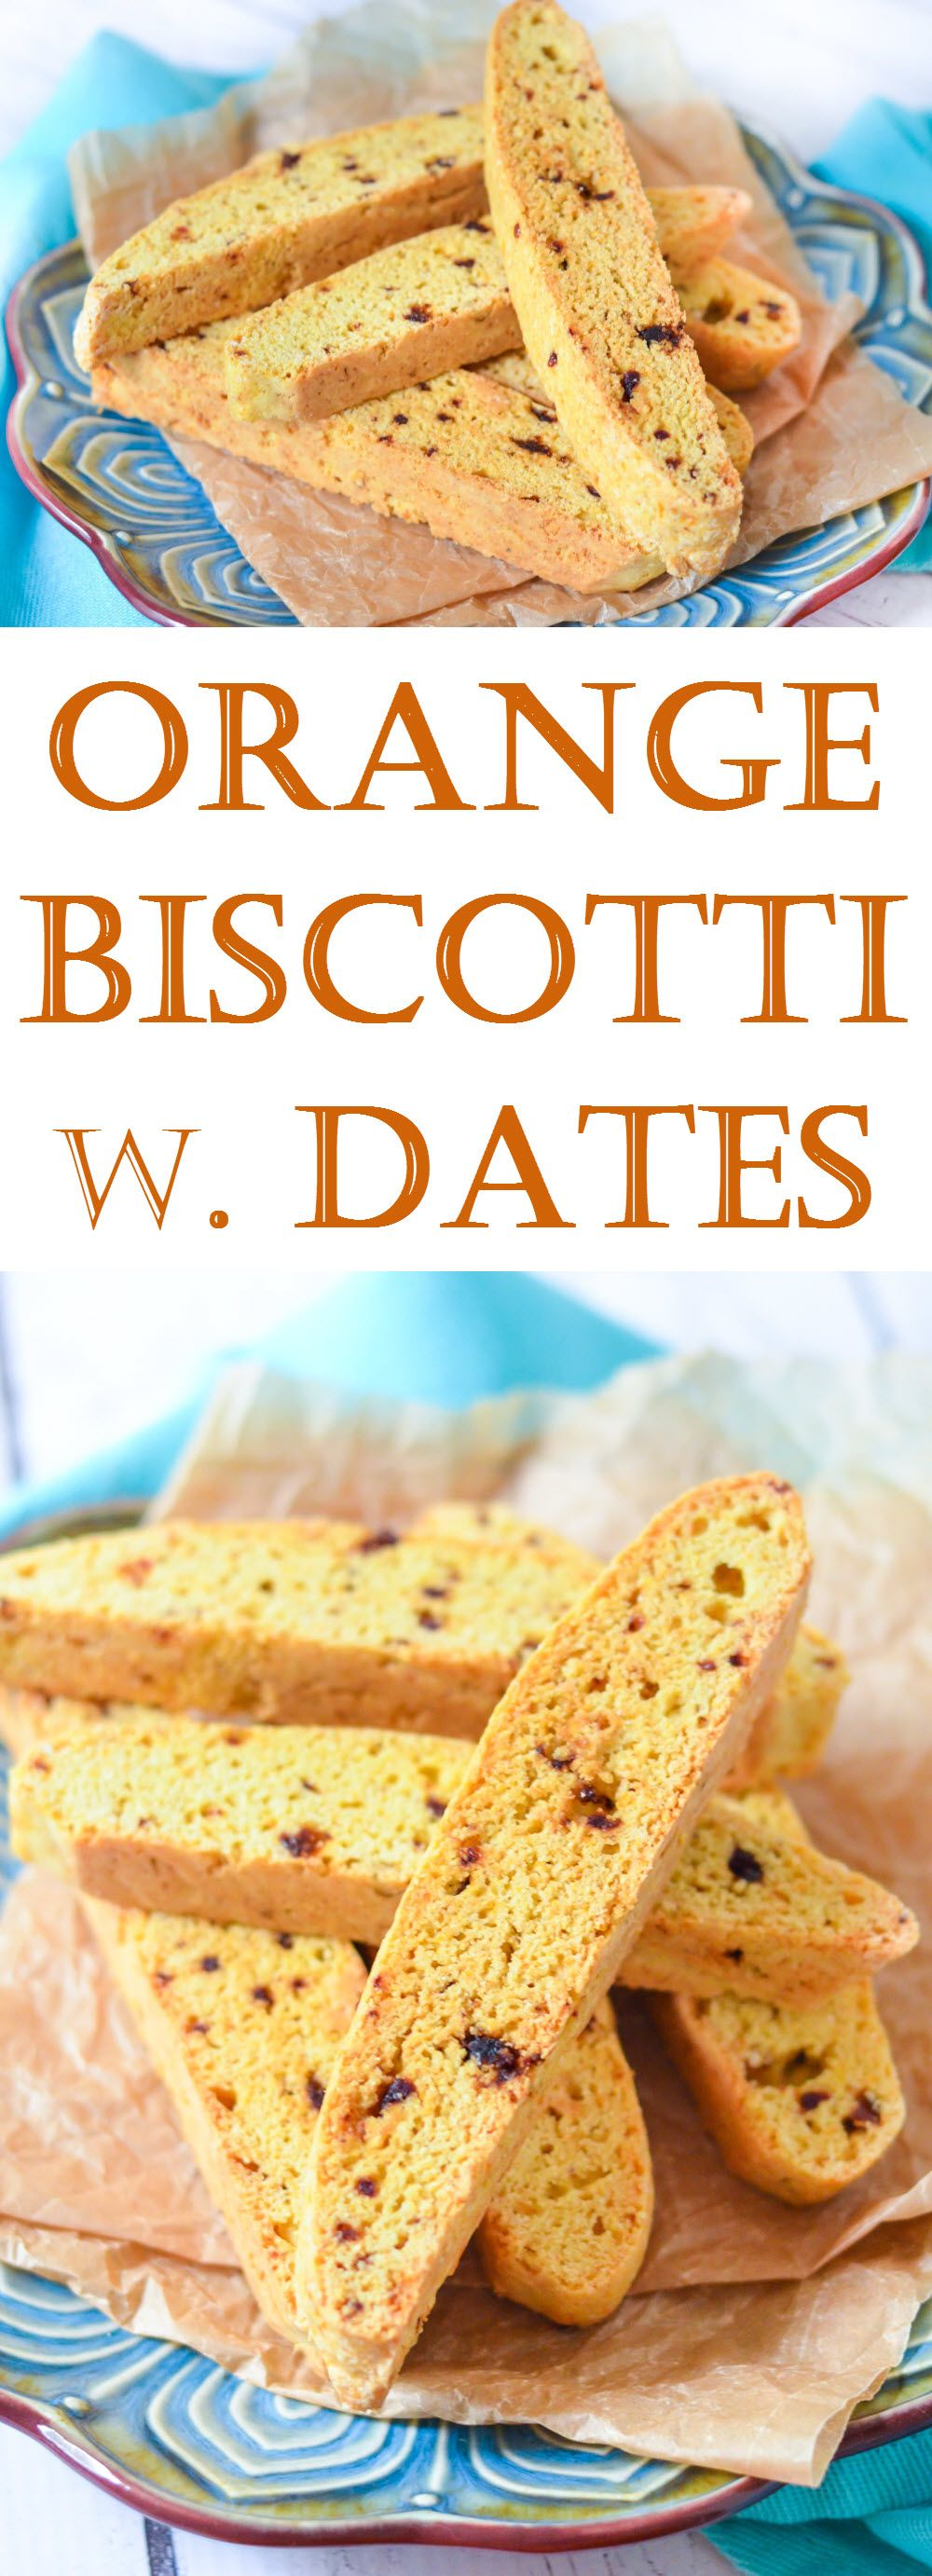 Delicious orange biscotti with chopped dates. A lower fat recipe for biscotti, you'll be addicted to this coffee or tea accompaniment in no time!